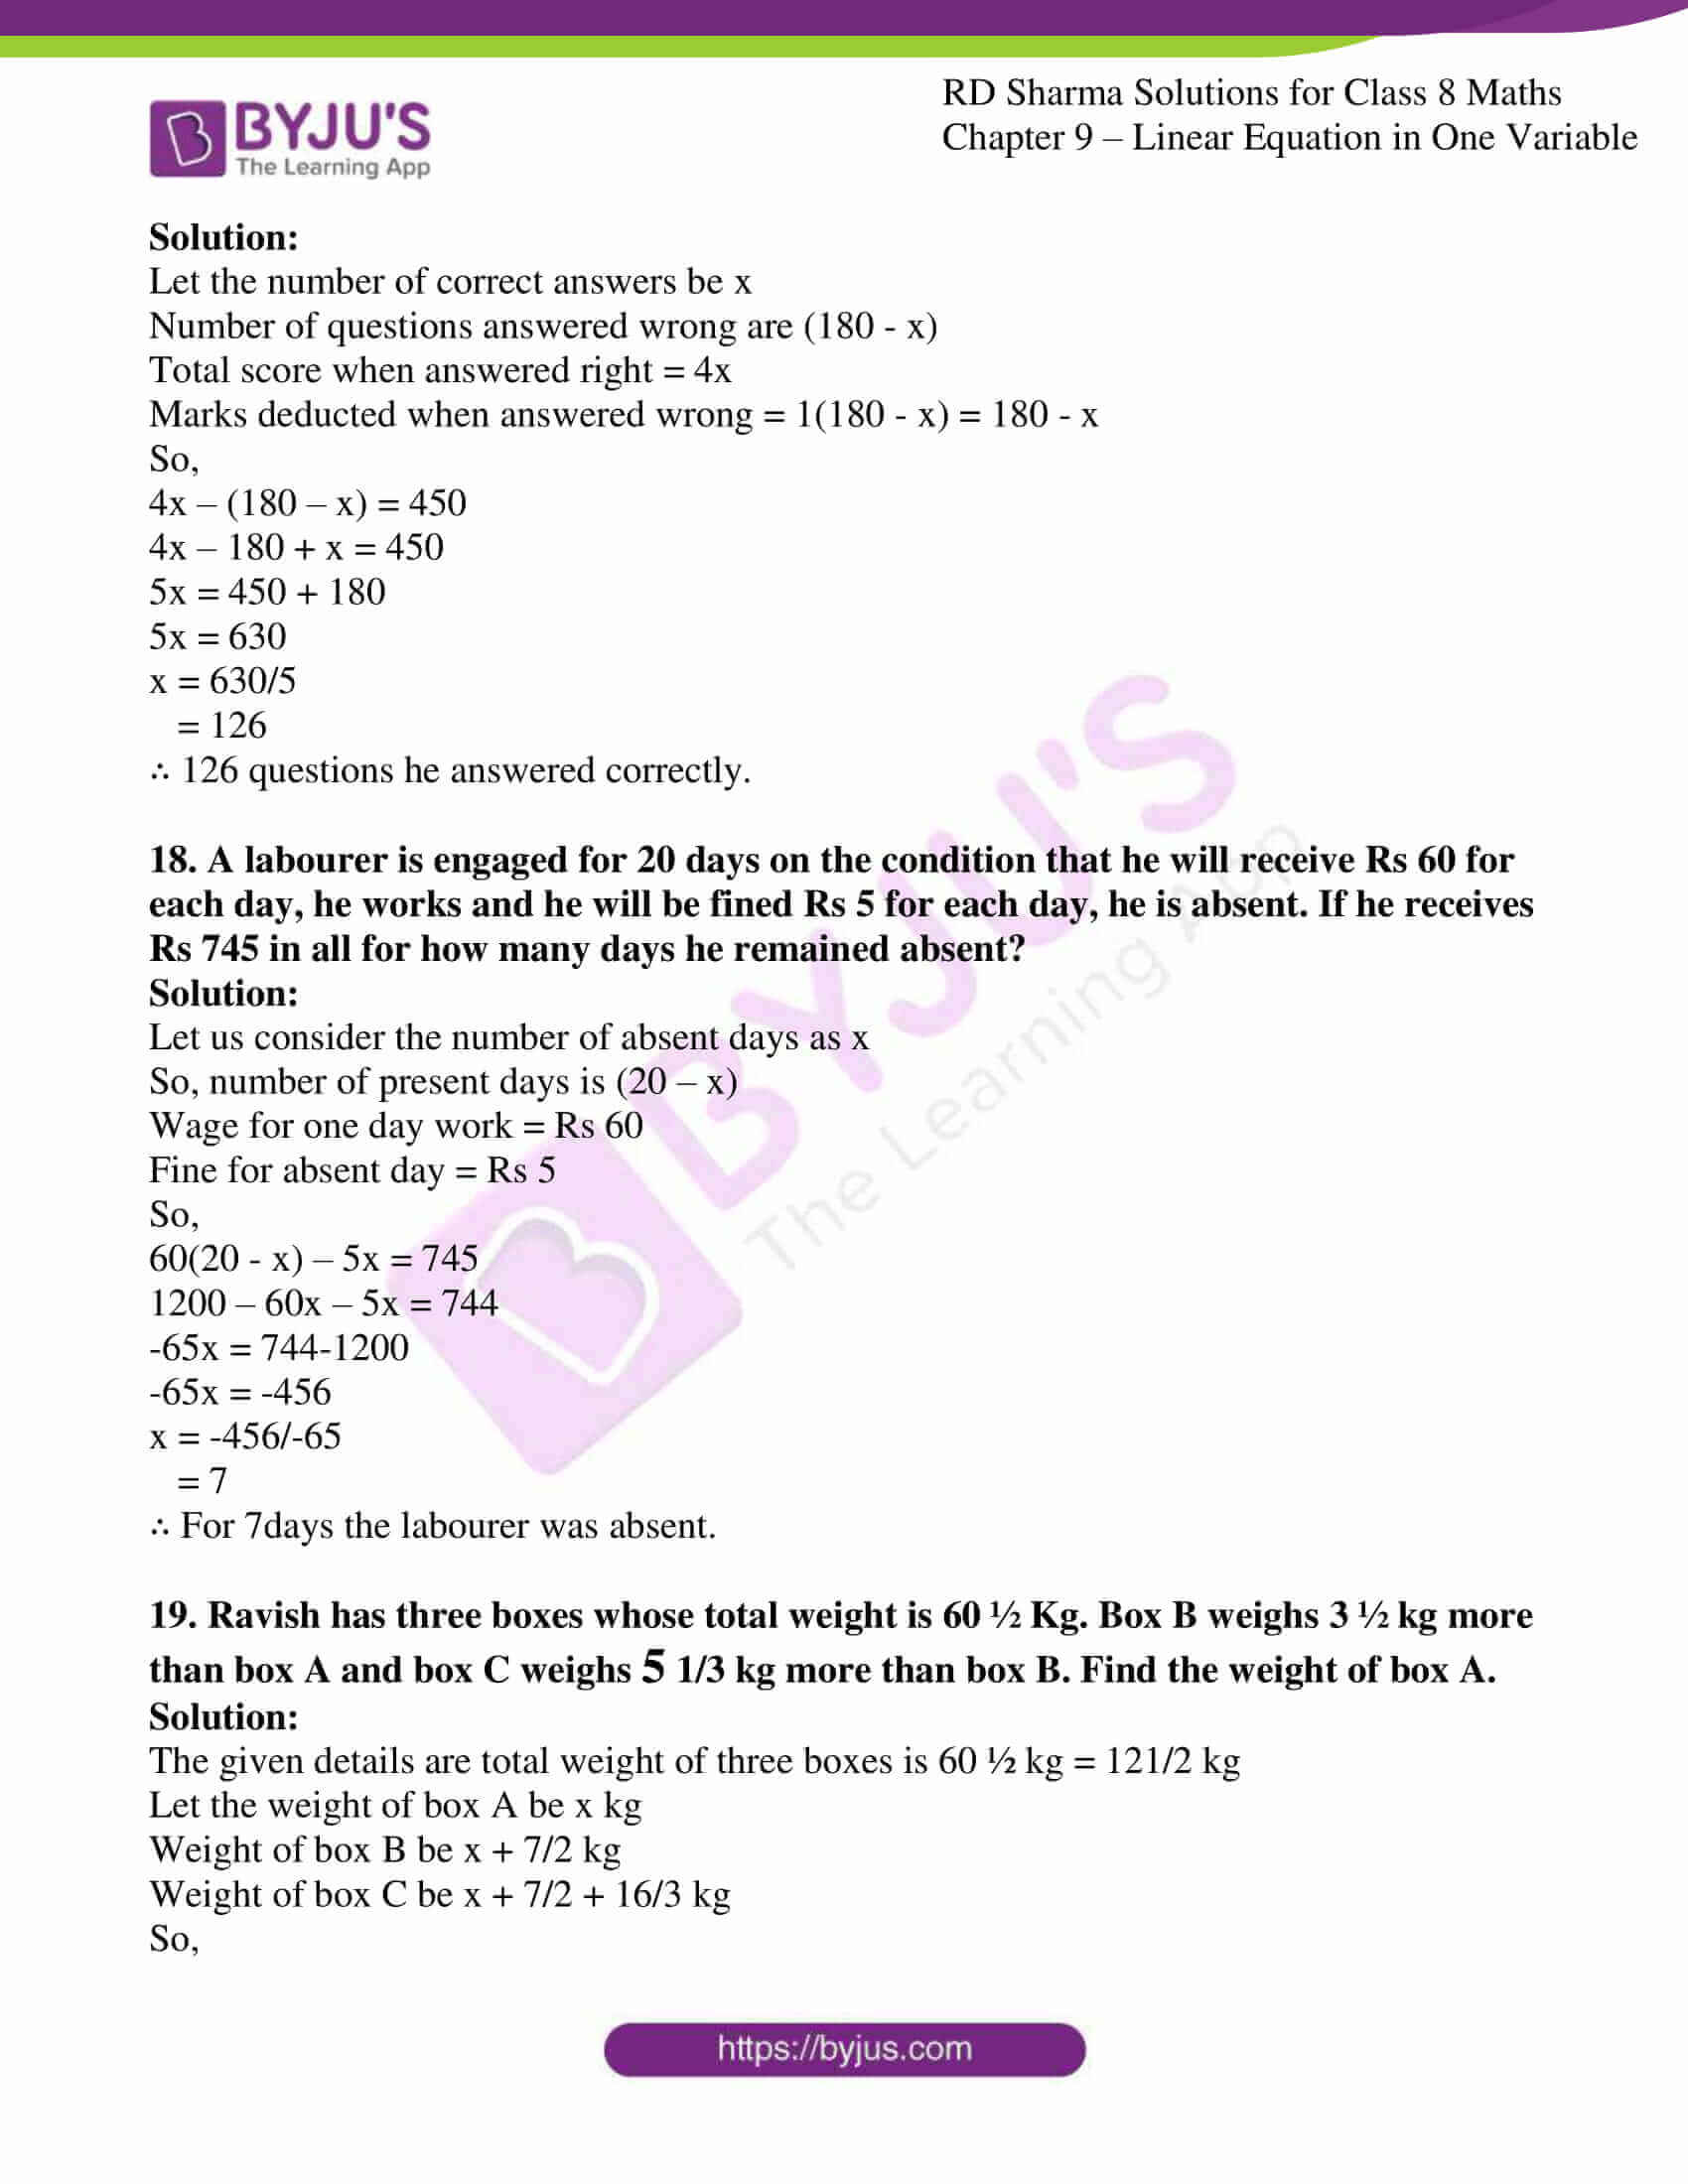 rd sharma class 8 maths chapter 9 exercise 4 08